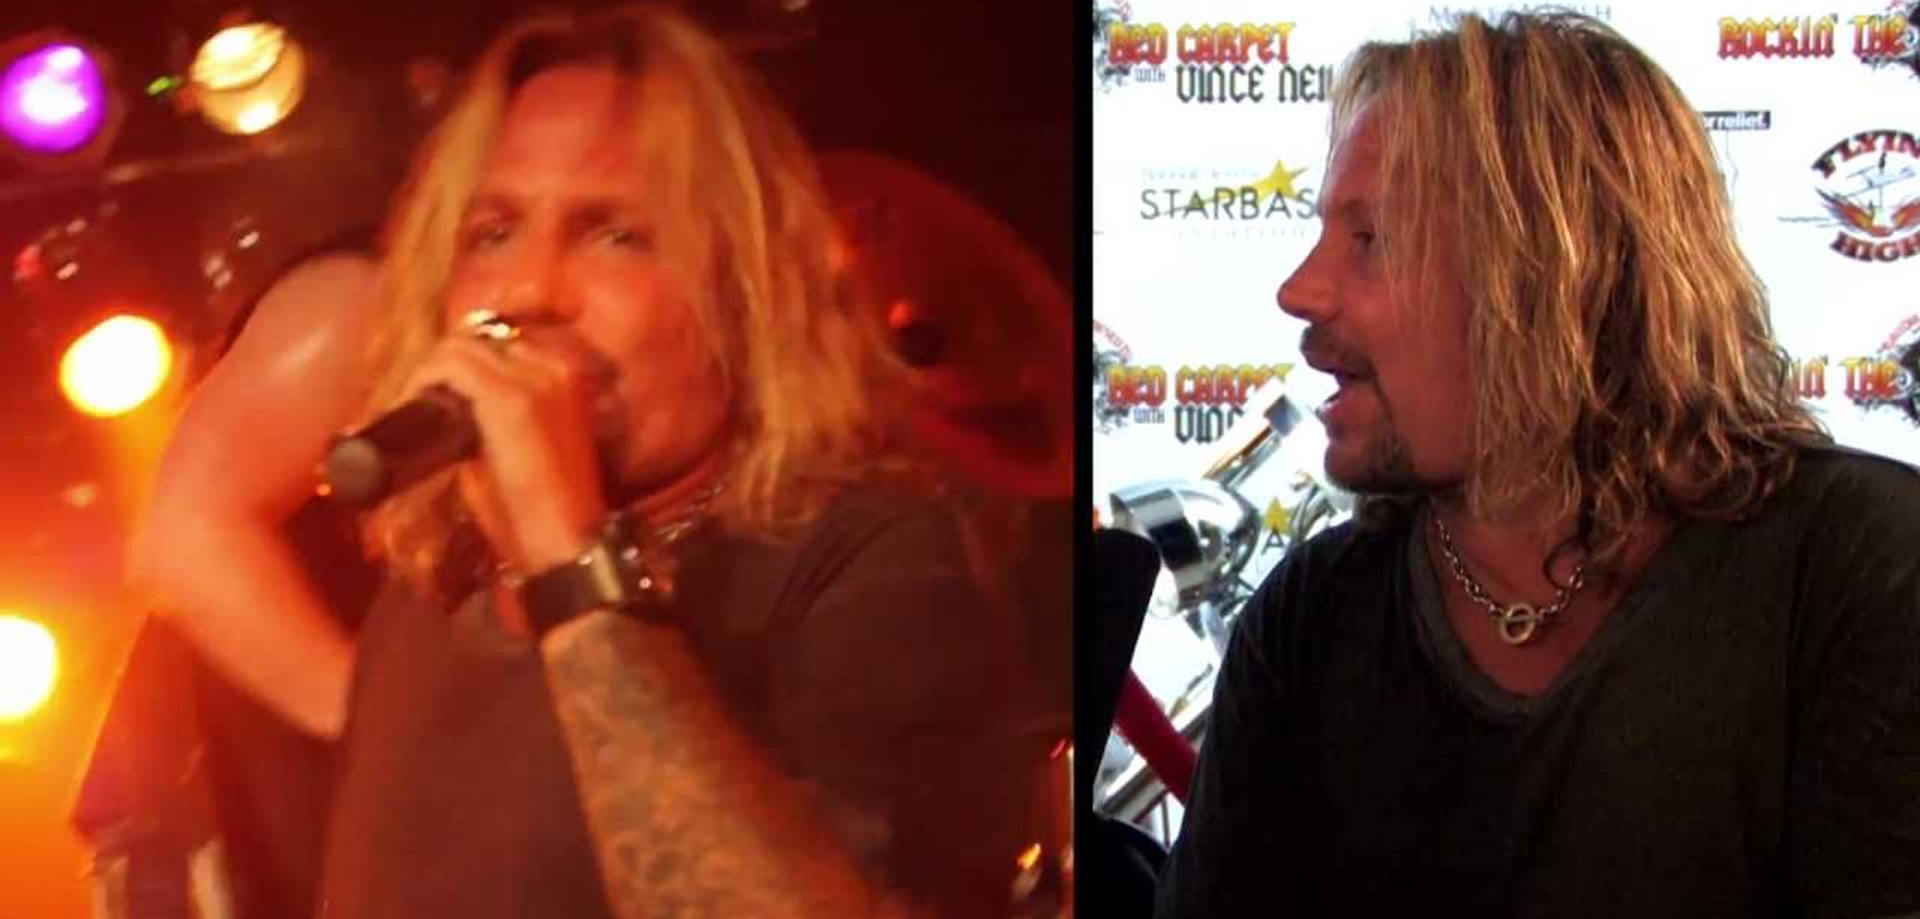 Vince Neil of Motley Crue